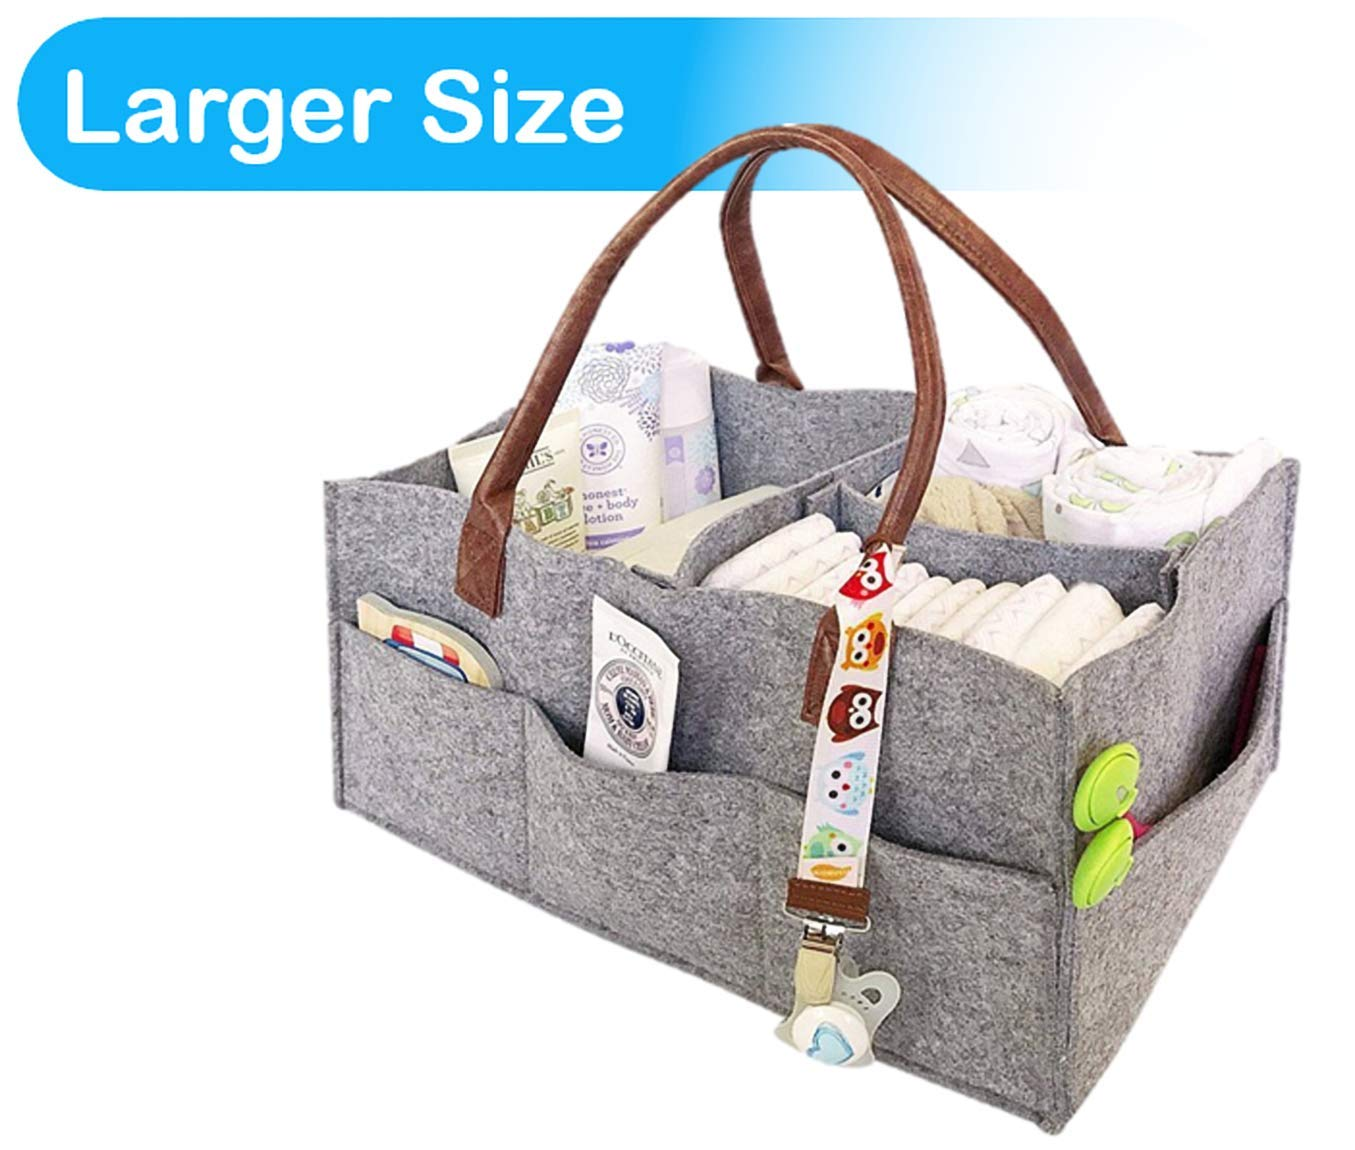 Foldable Baby Diaper Caddy Organiser with changeable compartments, Nappy organizer basket for changing nappy, Large portable grey felt nursery storage bin with removable inserts for wipes, toys, table and car caddy bag, Newborn shower gift, box, pail Priv